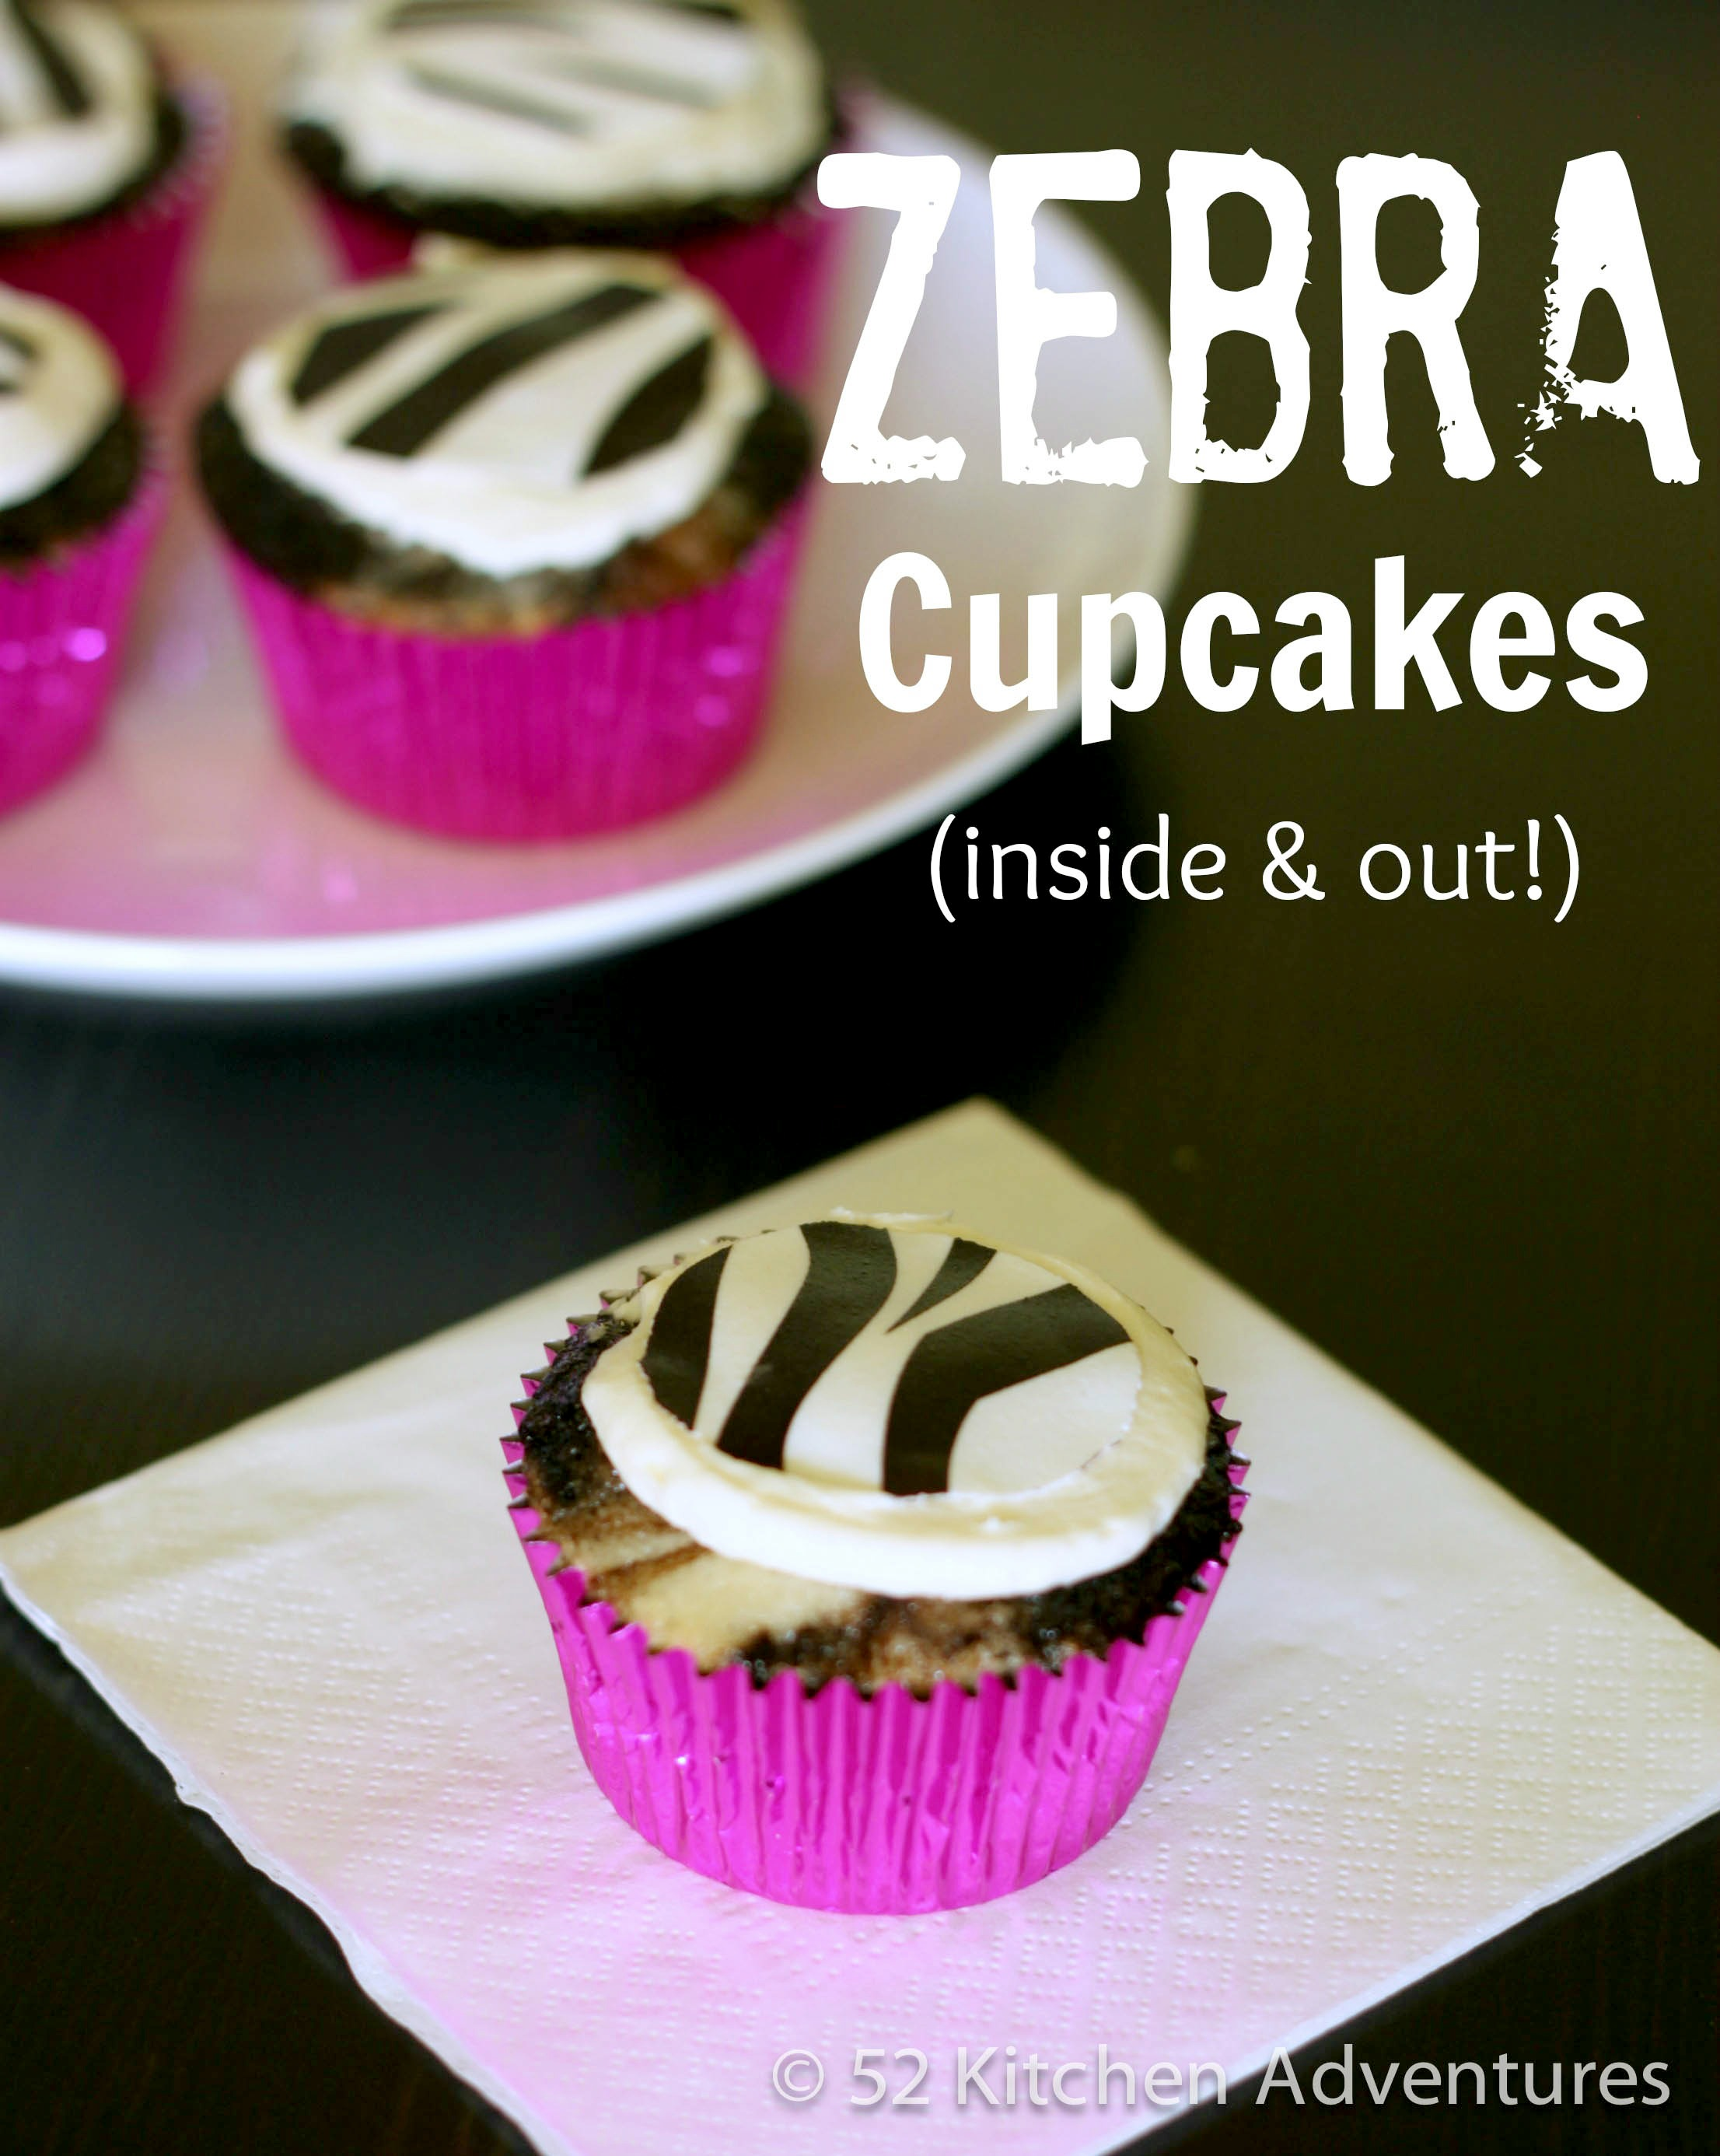 How to make zebra cupcakes (inside & out!)